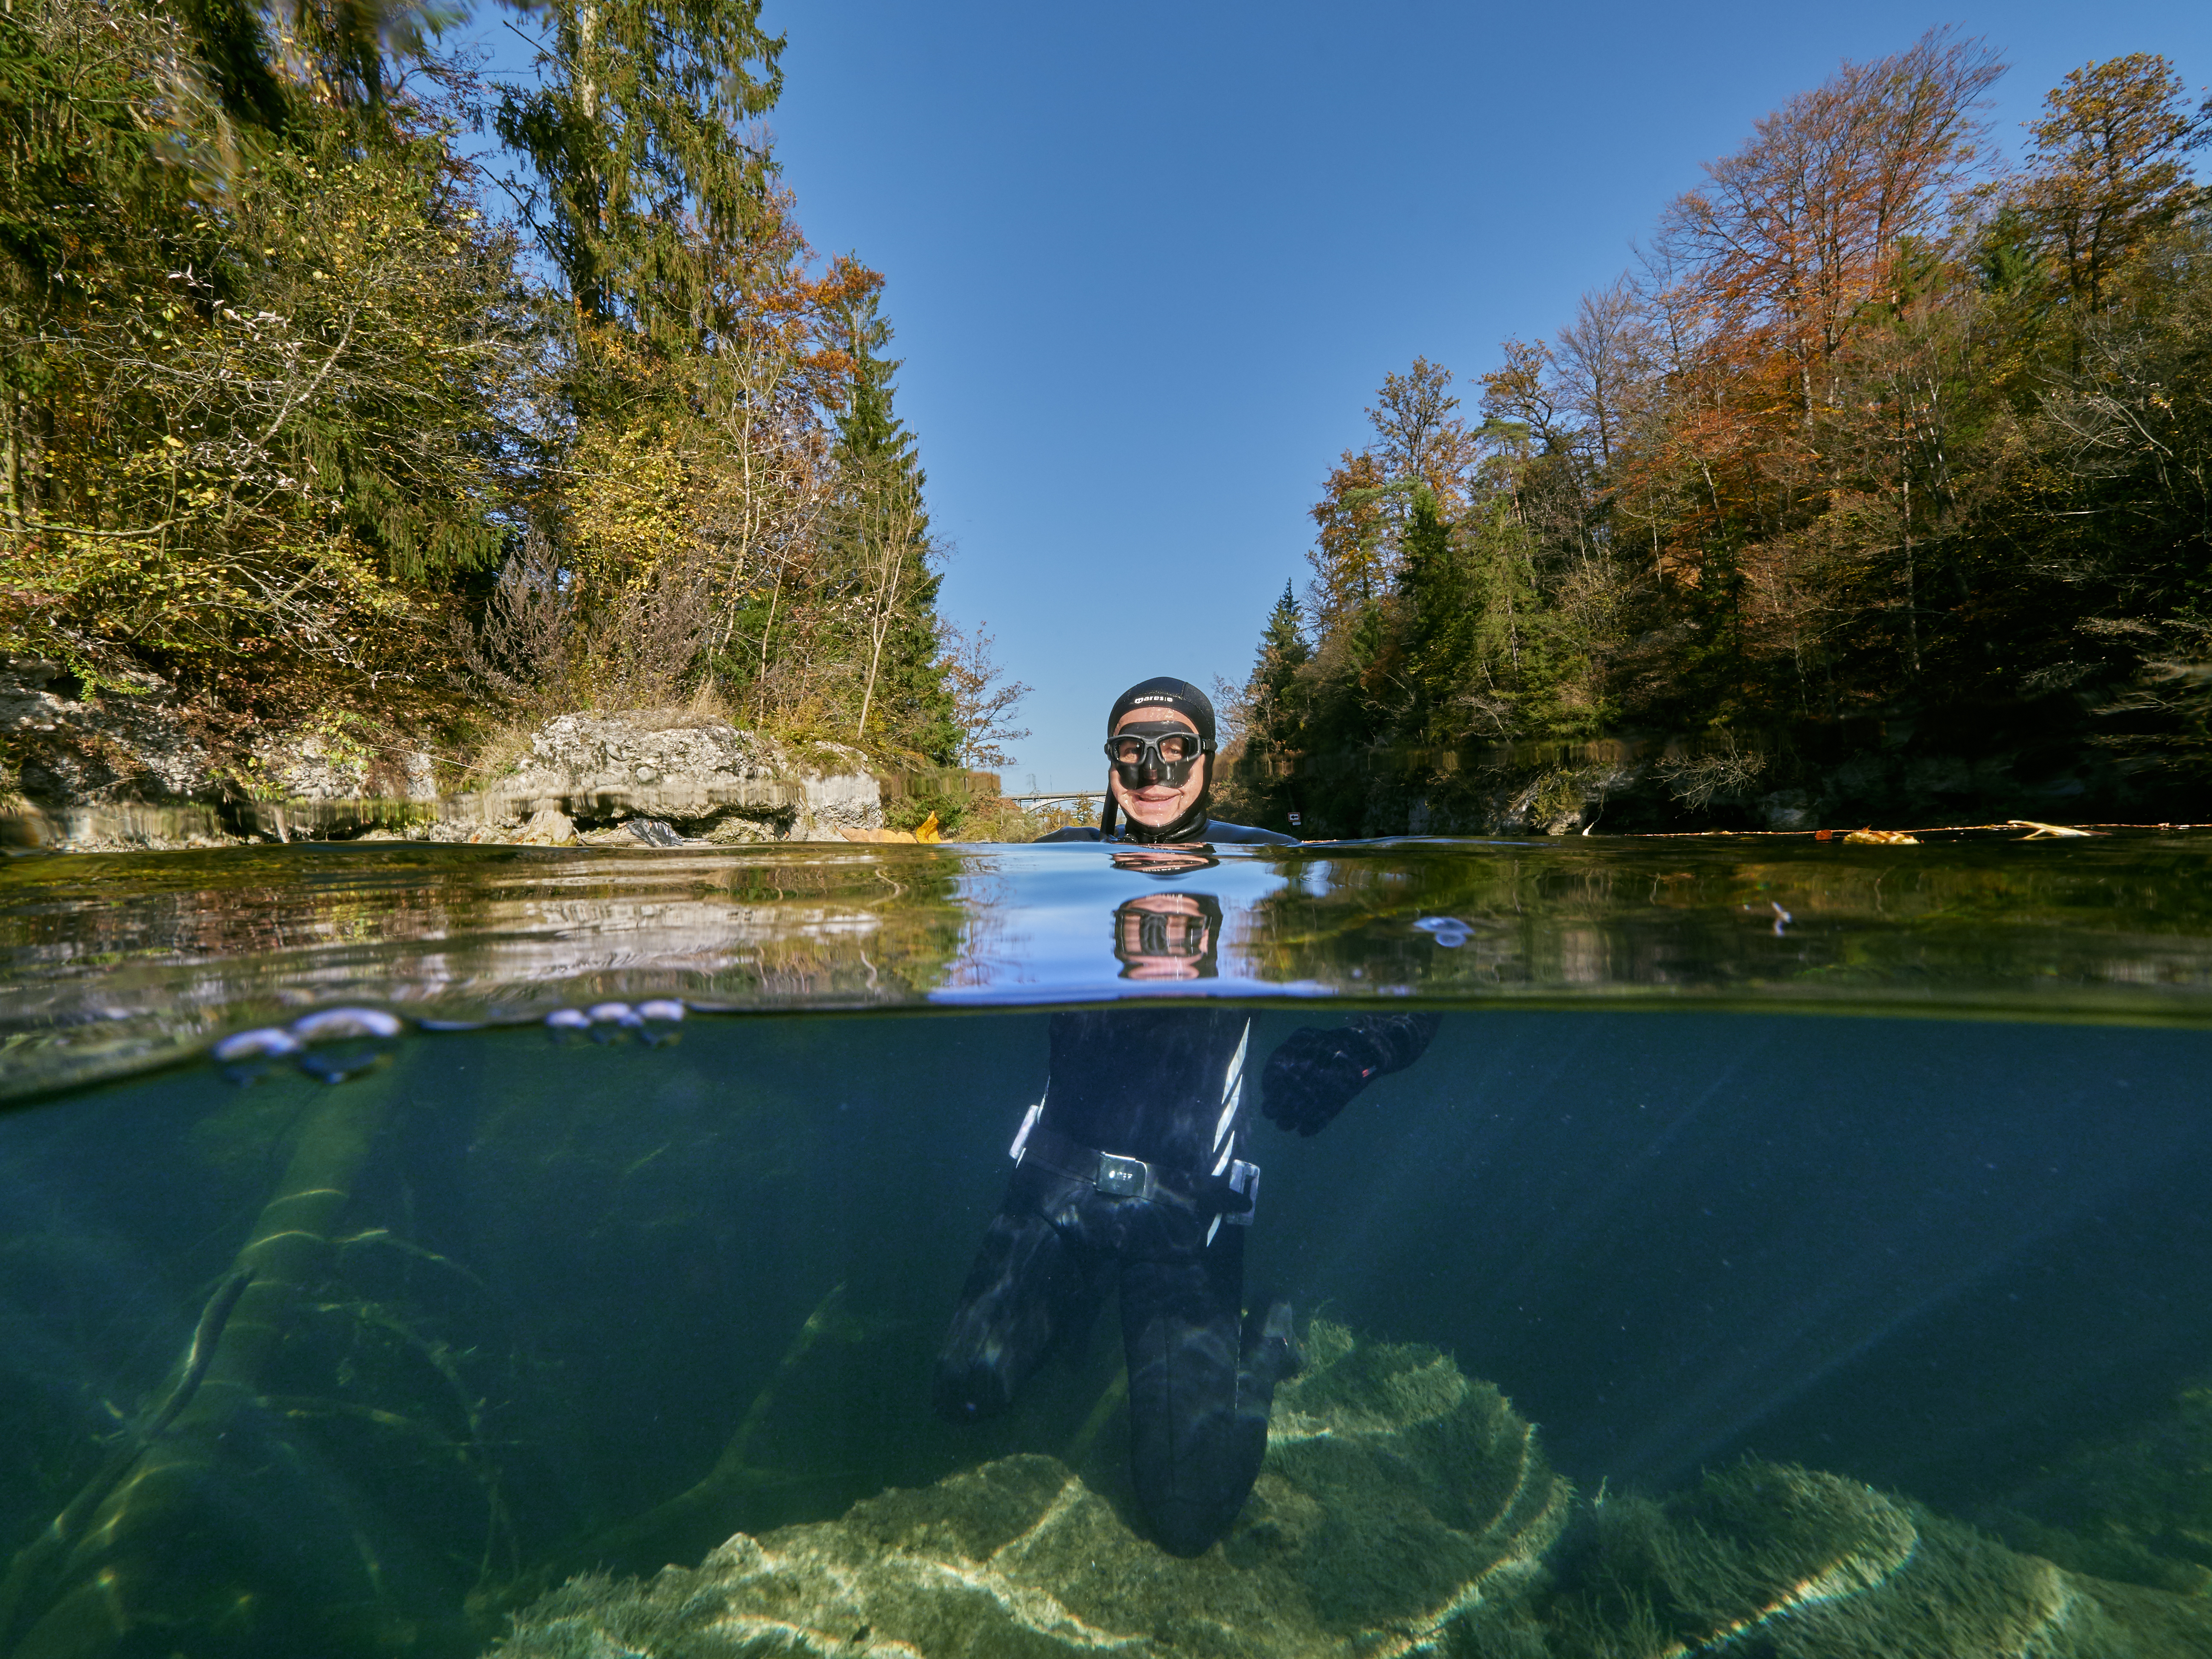 Traun / Traunfall - freediving